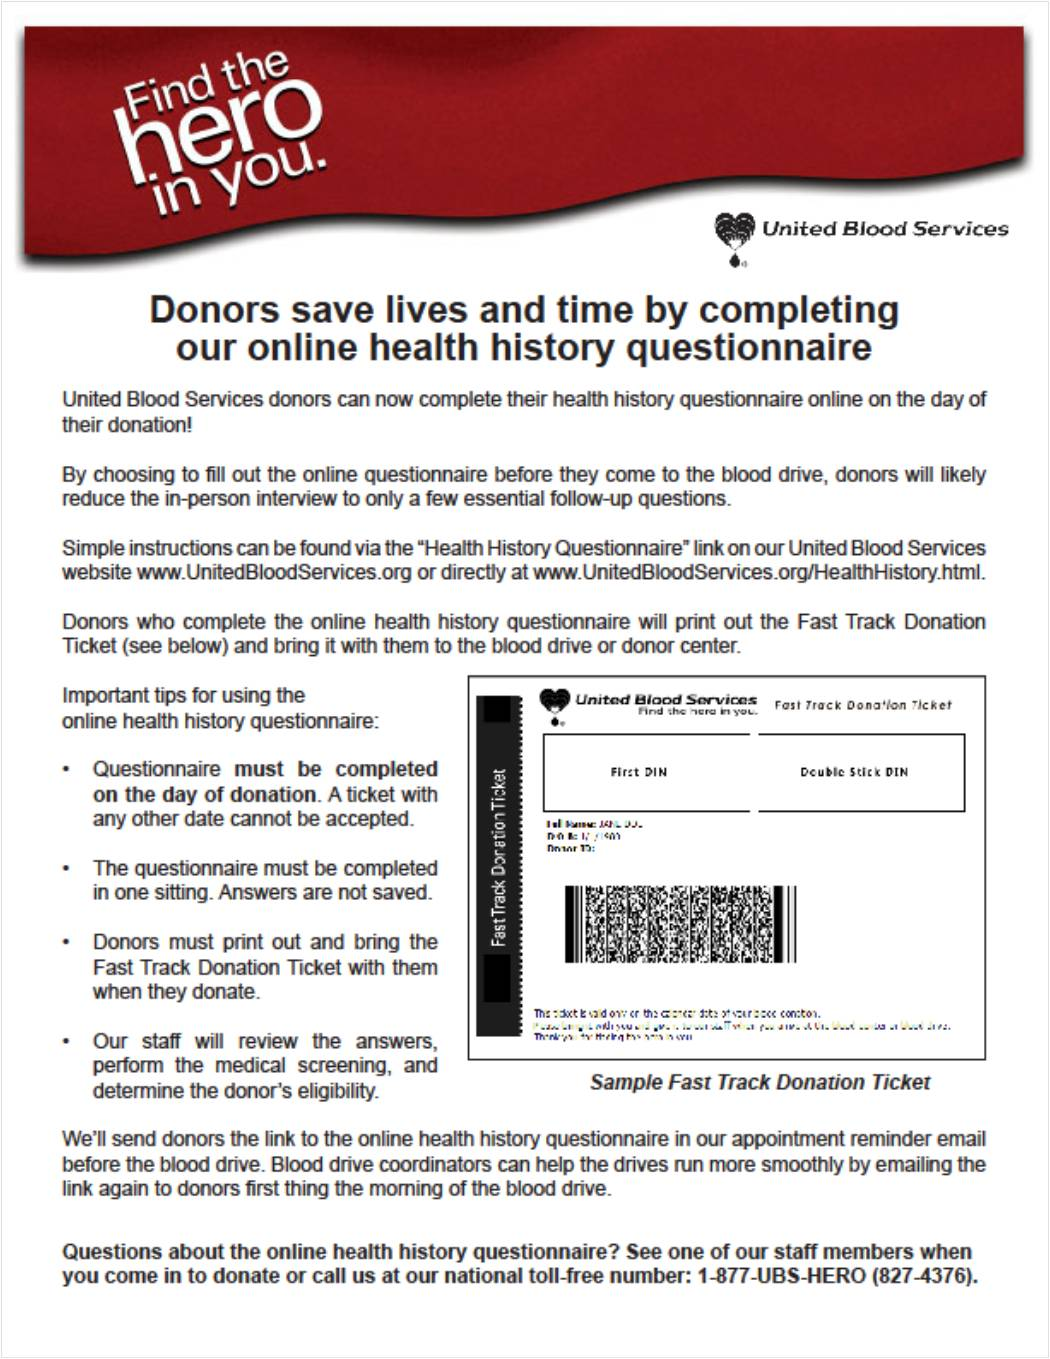 united blood services online health history questionnaire 152nd